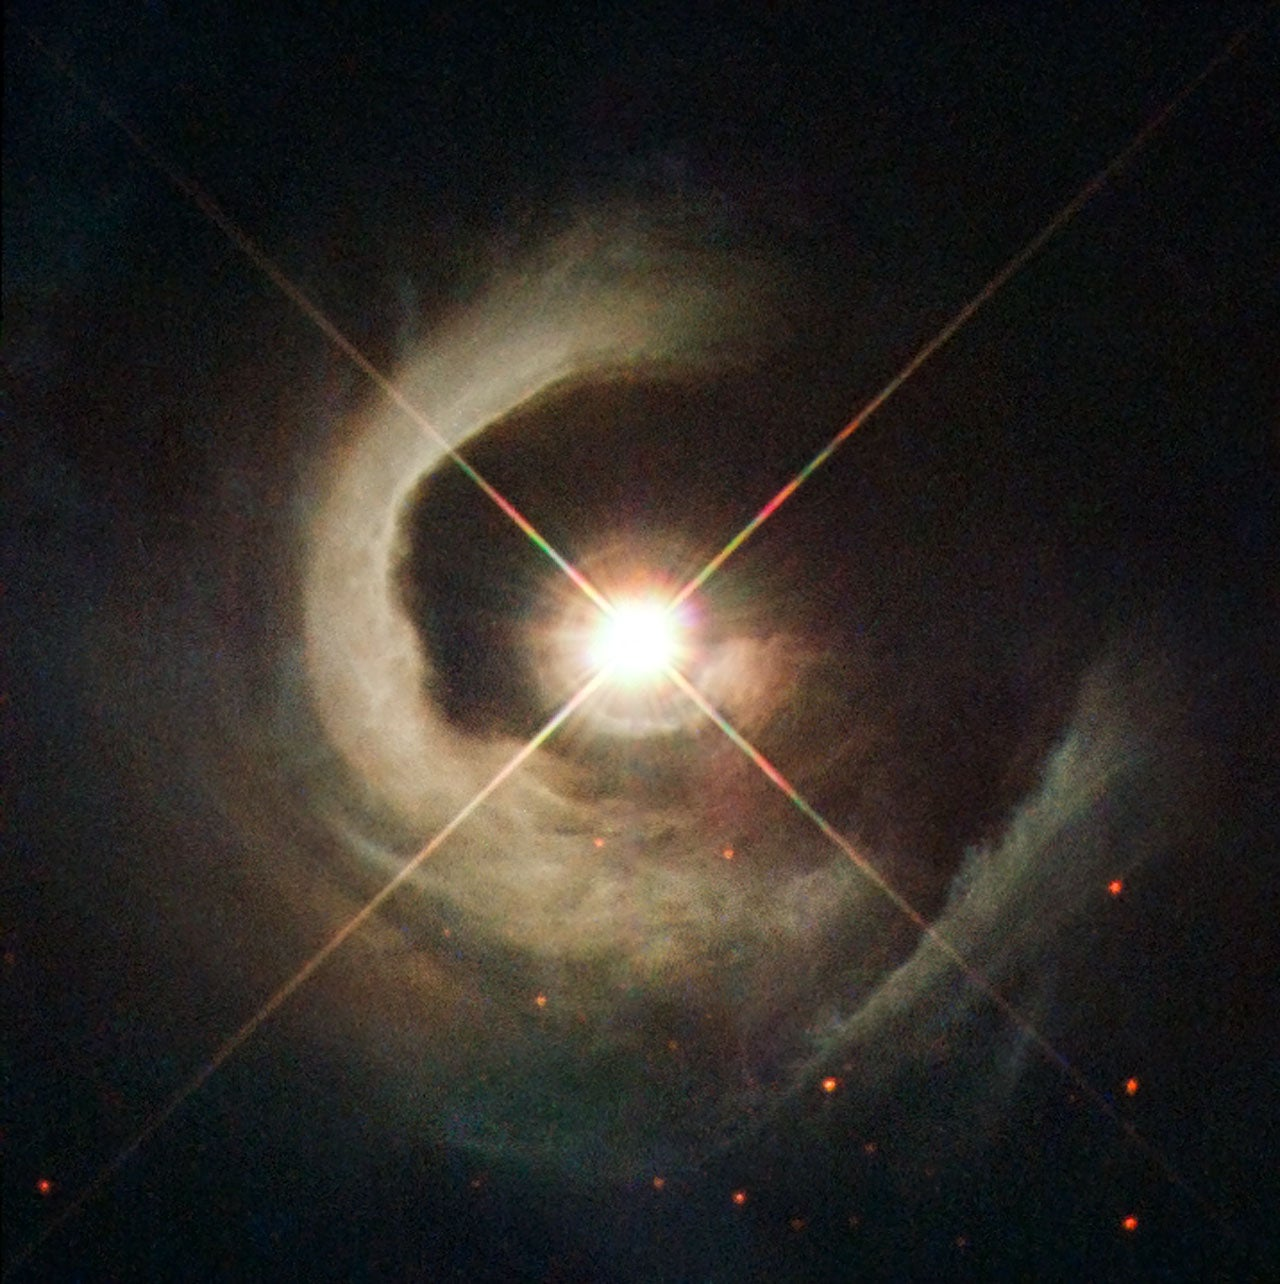 New spectacular photo of a very special star